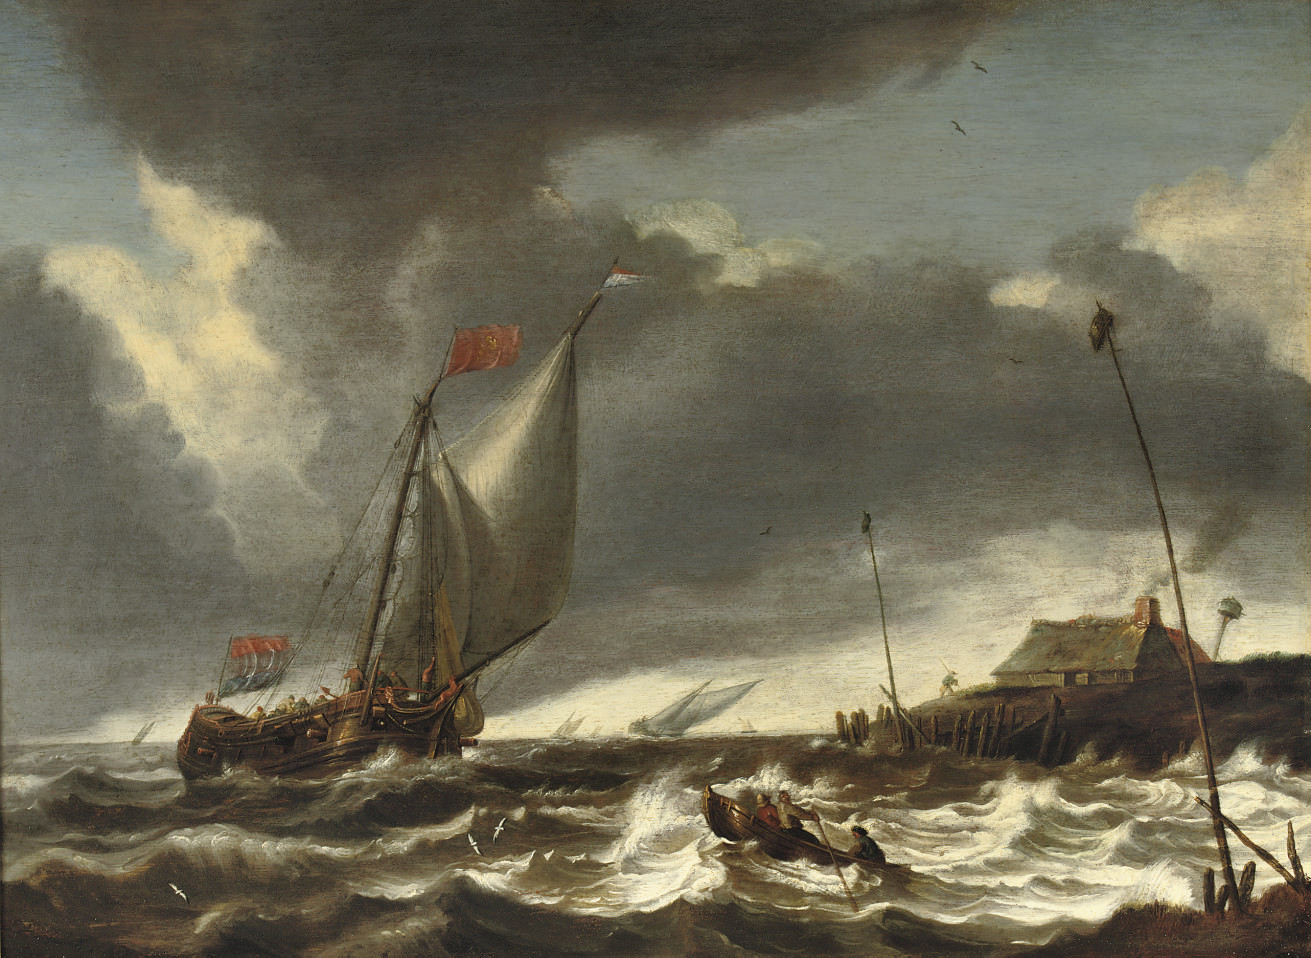 Shipping in stormy waters near a coast